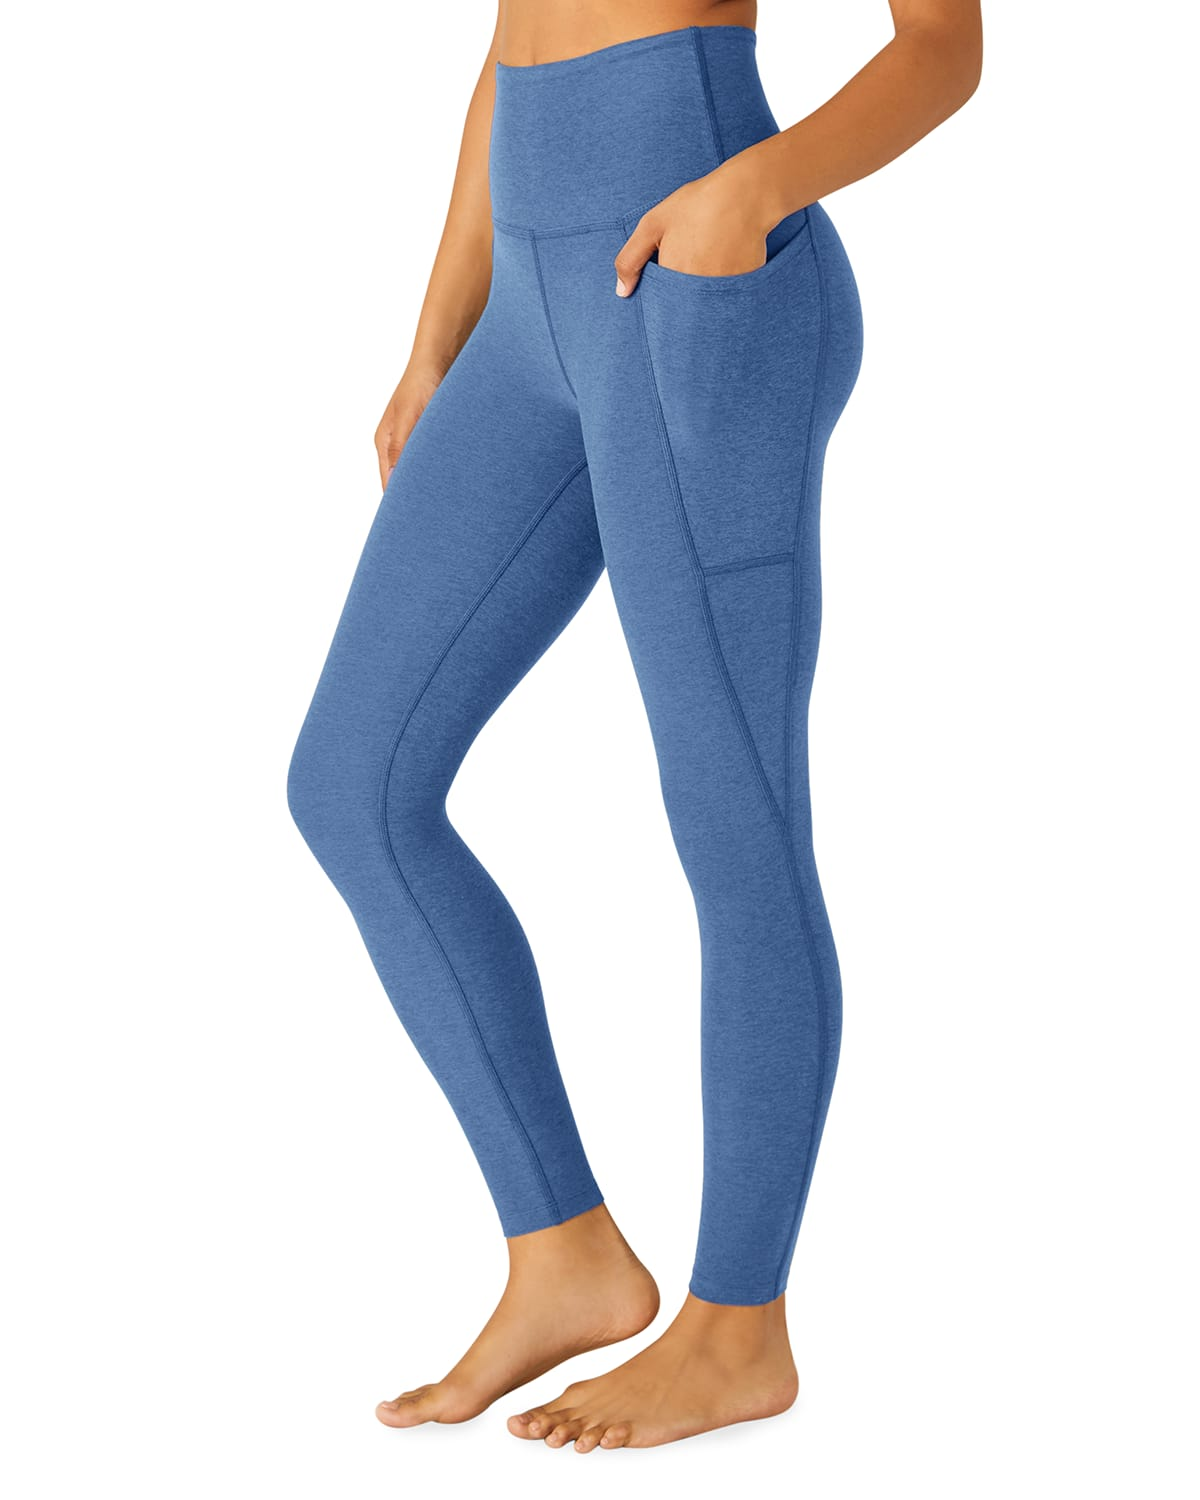 Out Of Pocket Space Dye High-Waist Mid Leggings